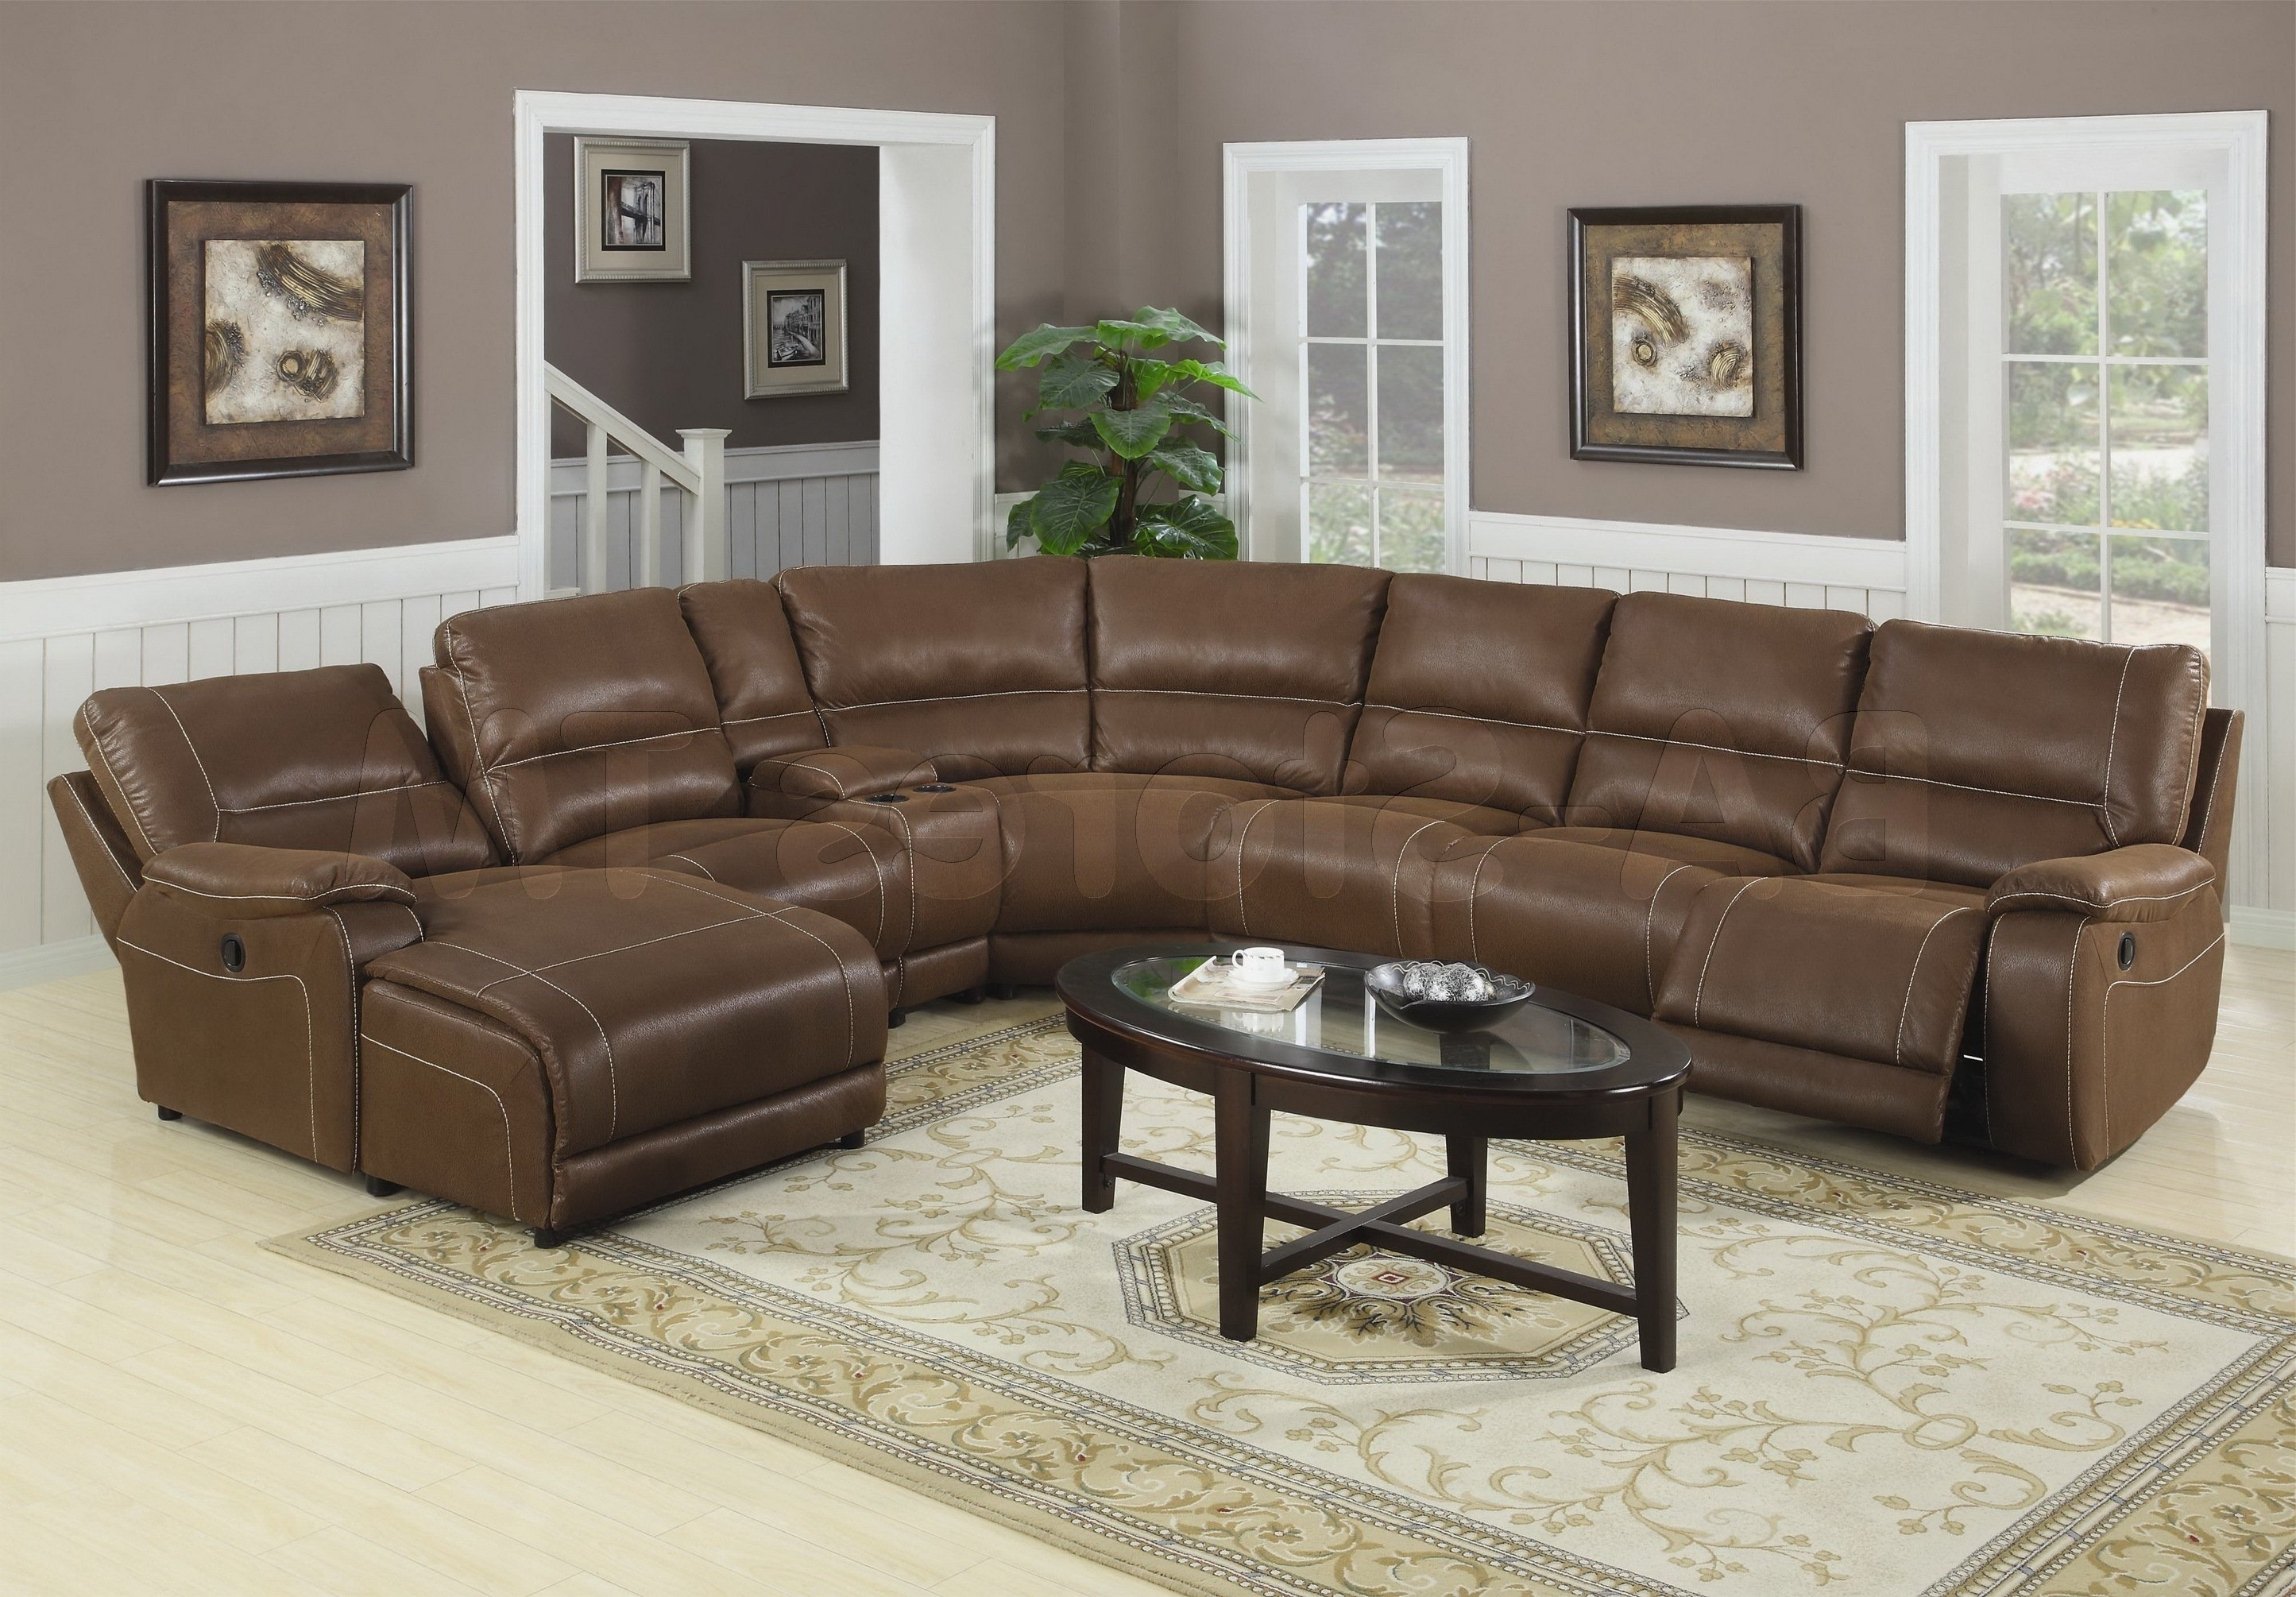 Interior Luxury Oversized Sectional Sofa For Awesome Living Room Within Well Known Large Sectionals With Chaise (Gallery 15 of 15)